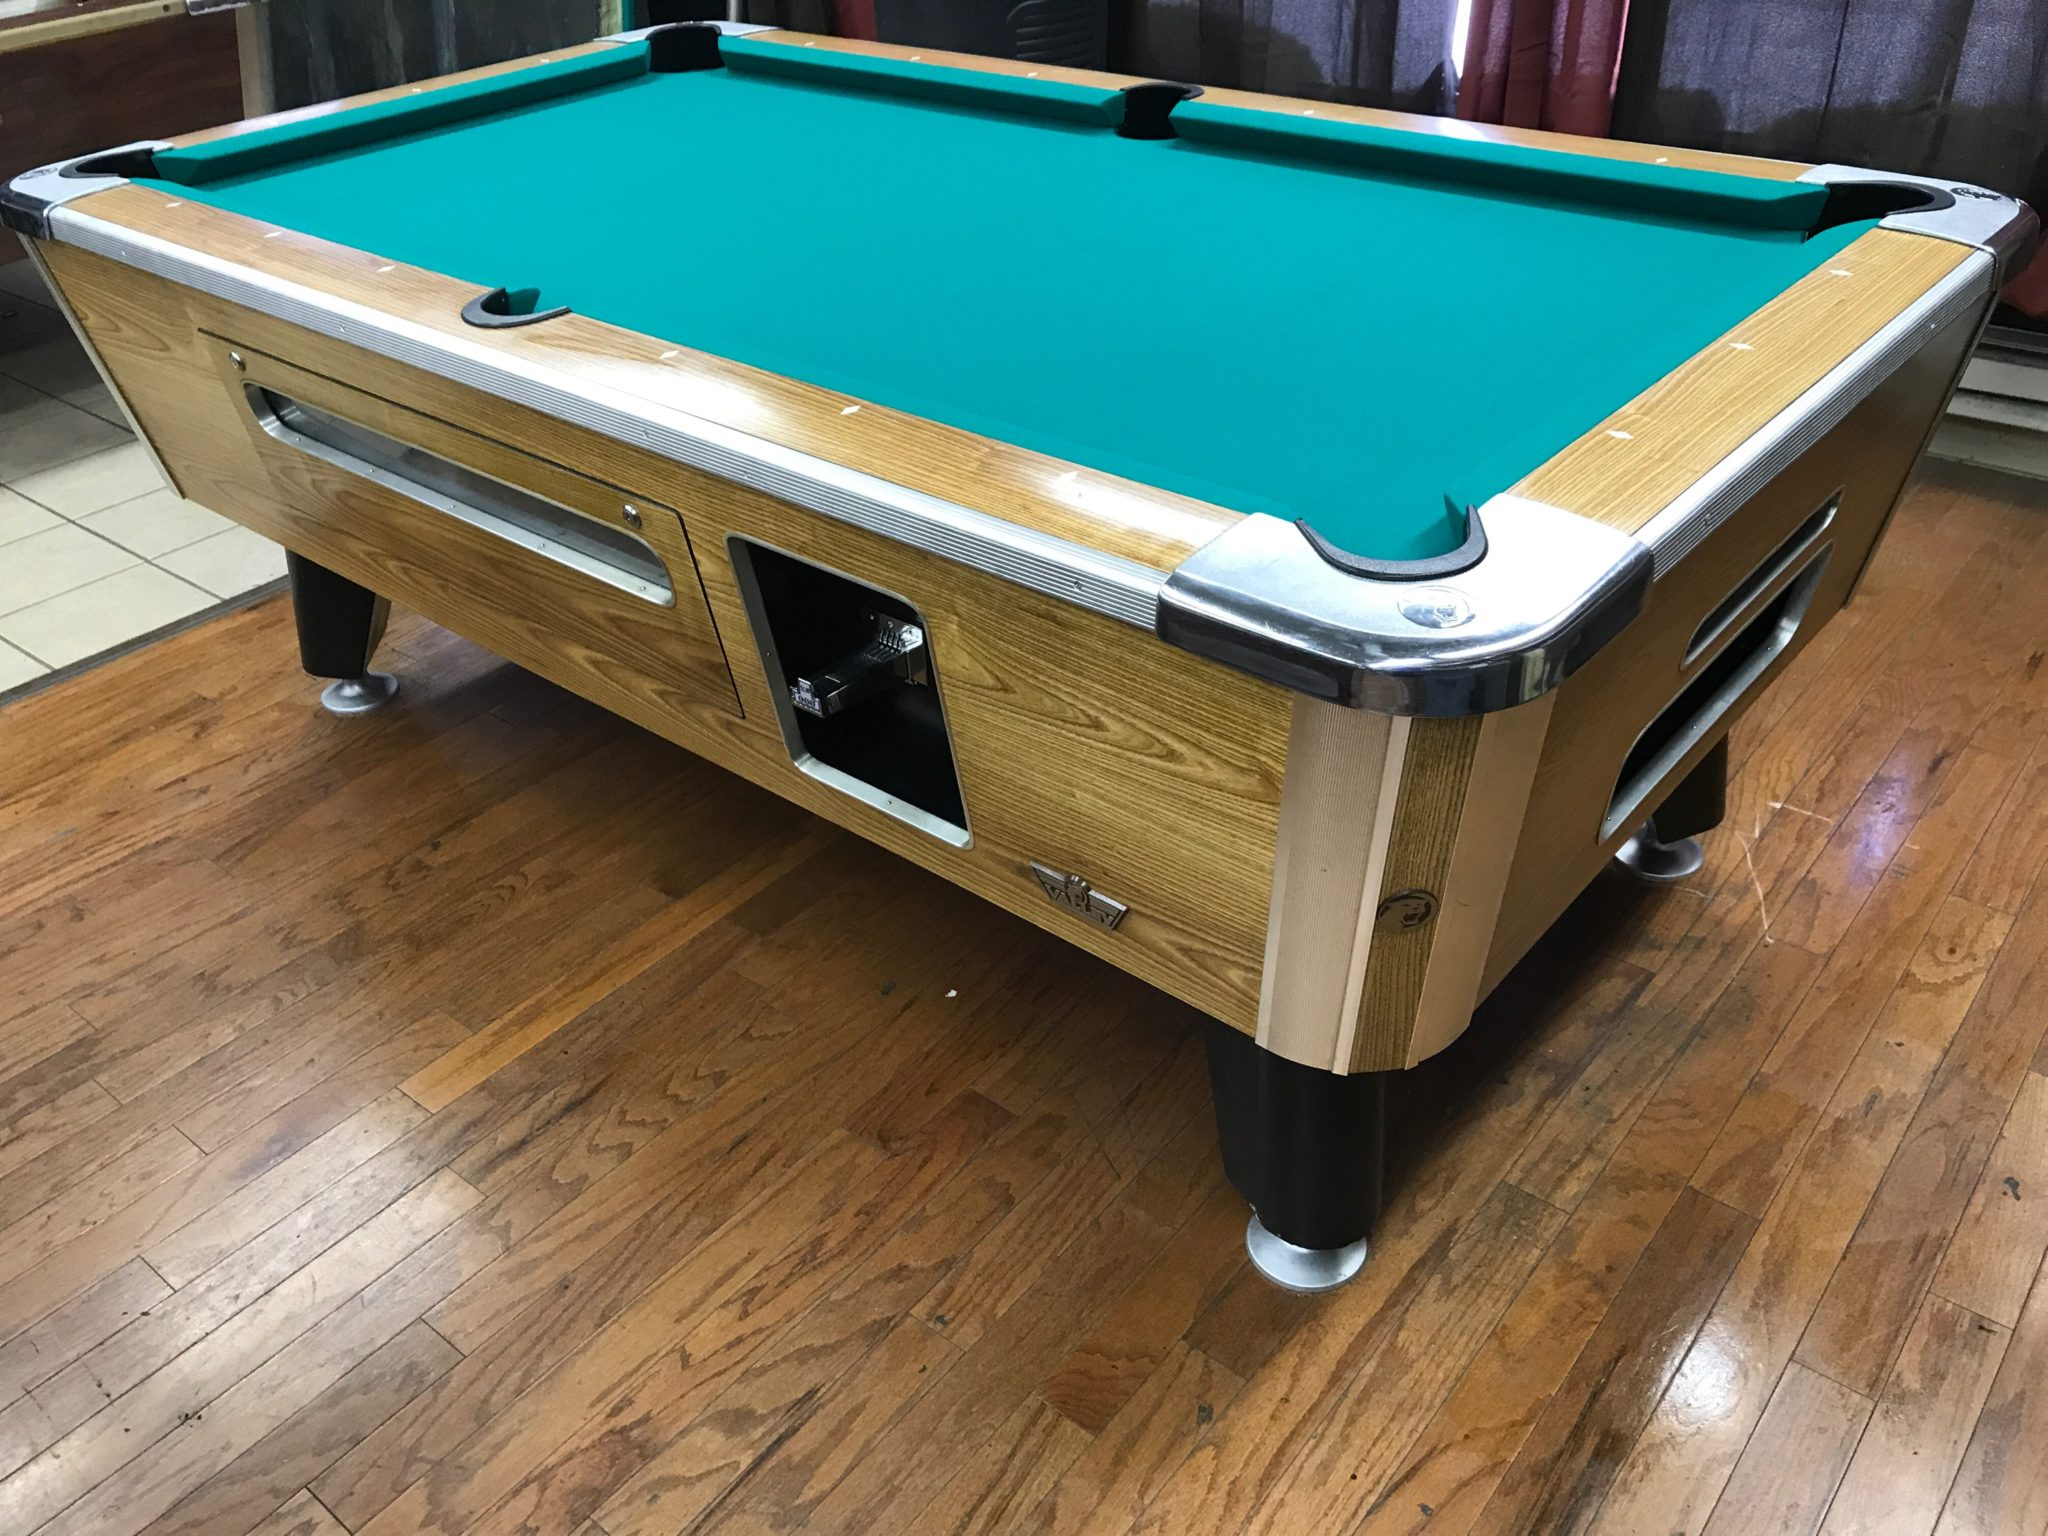 Table 060117 valley used coin operated pool table used coin operated bar pool tables - Photos of pool tables ...